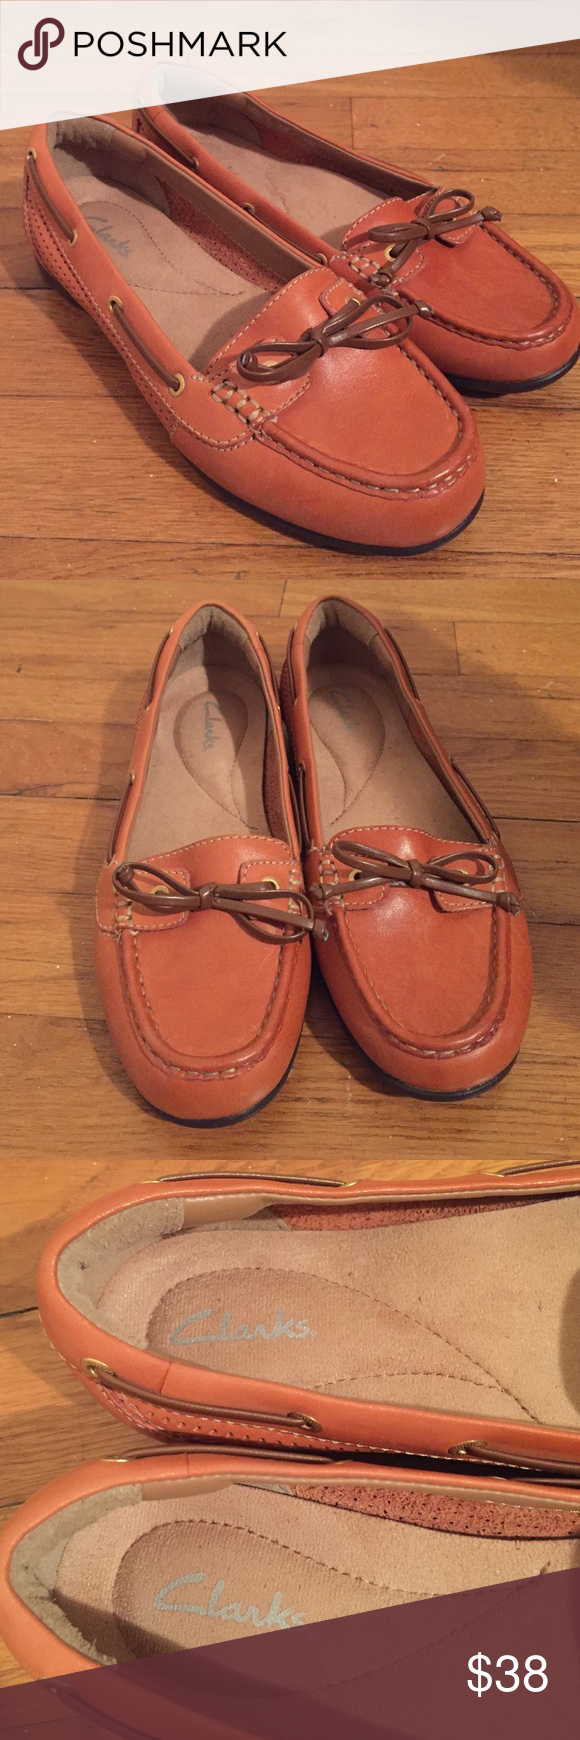 ✨SALE✨ • CLARKS • NWOT • loafers Clarks NWOT orange/tan loafers. Size 5. Comfortable & cute. Clarks Shoes Flats & Loafers